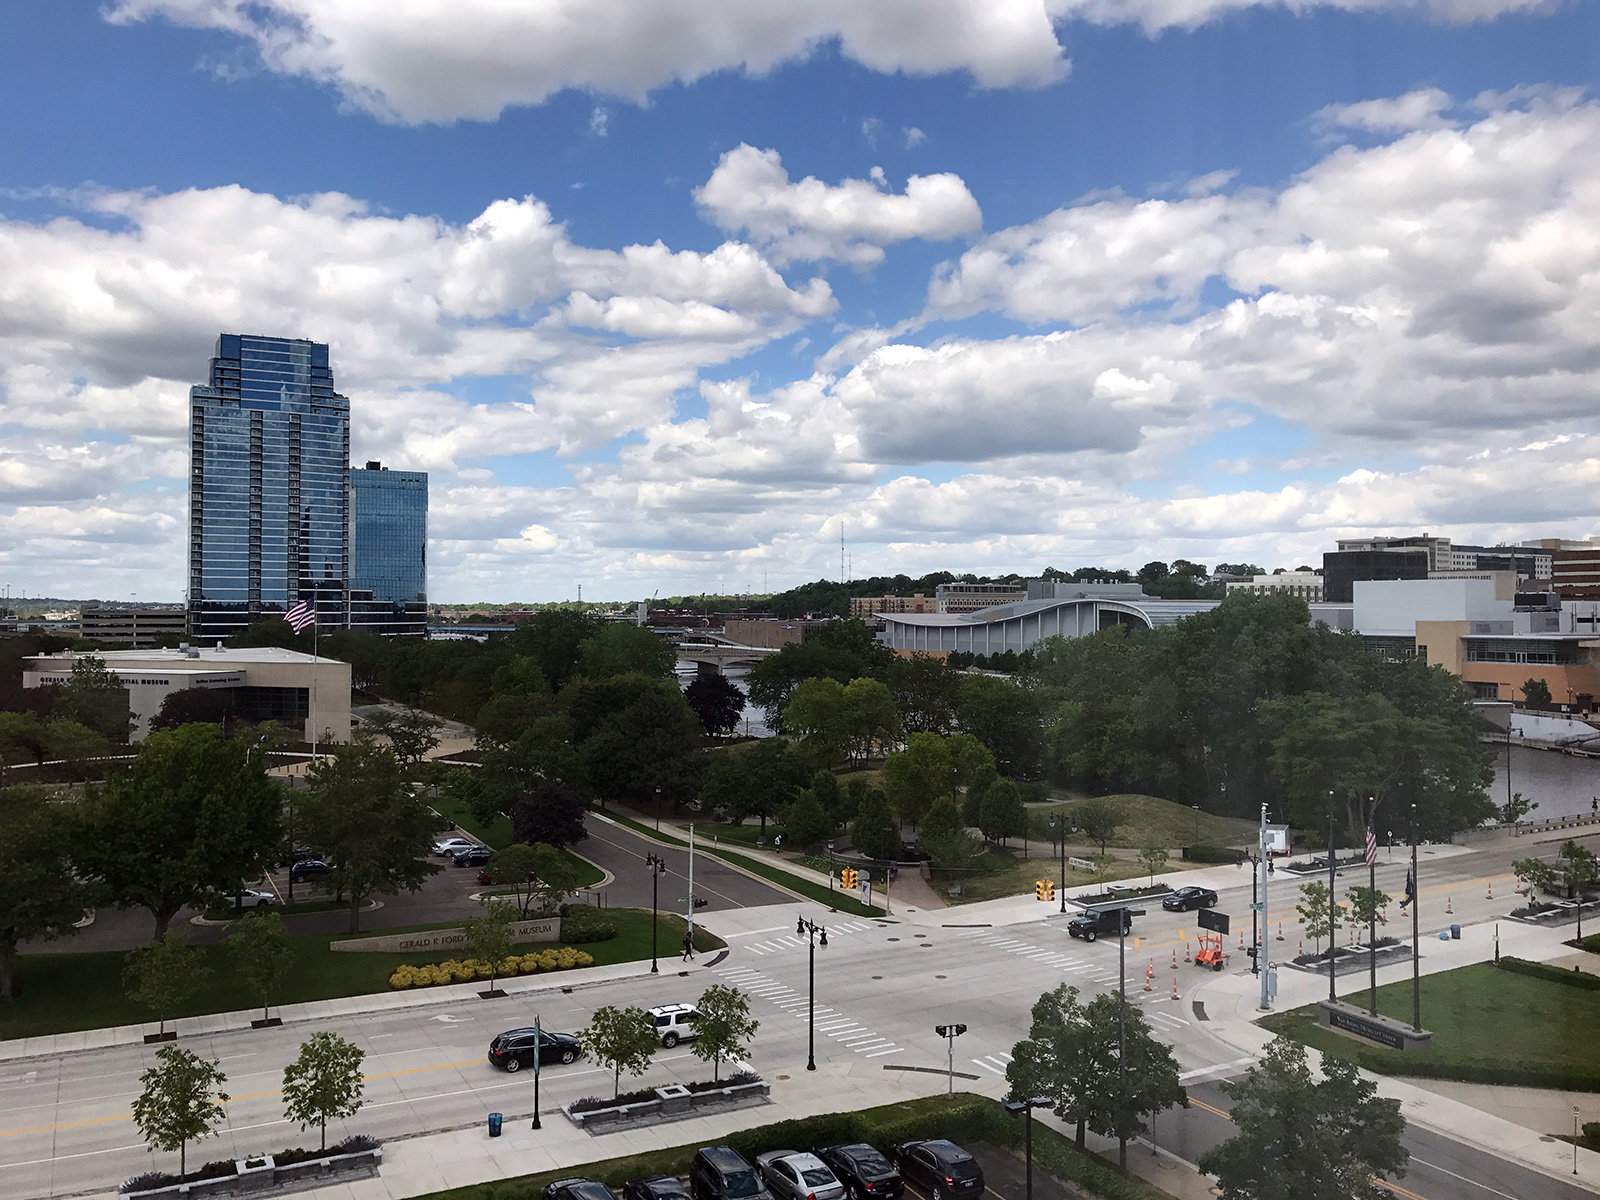 Grand Rapids, Michigan by Jets Like Taxis